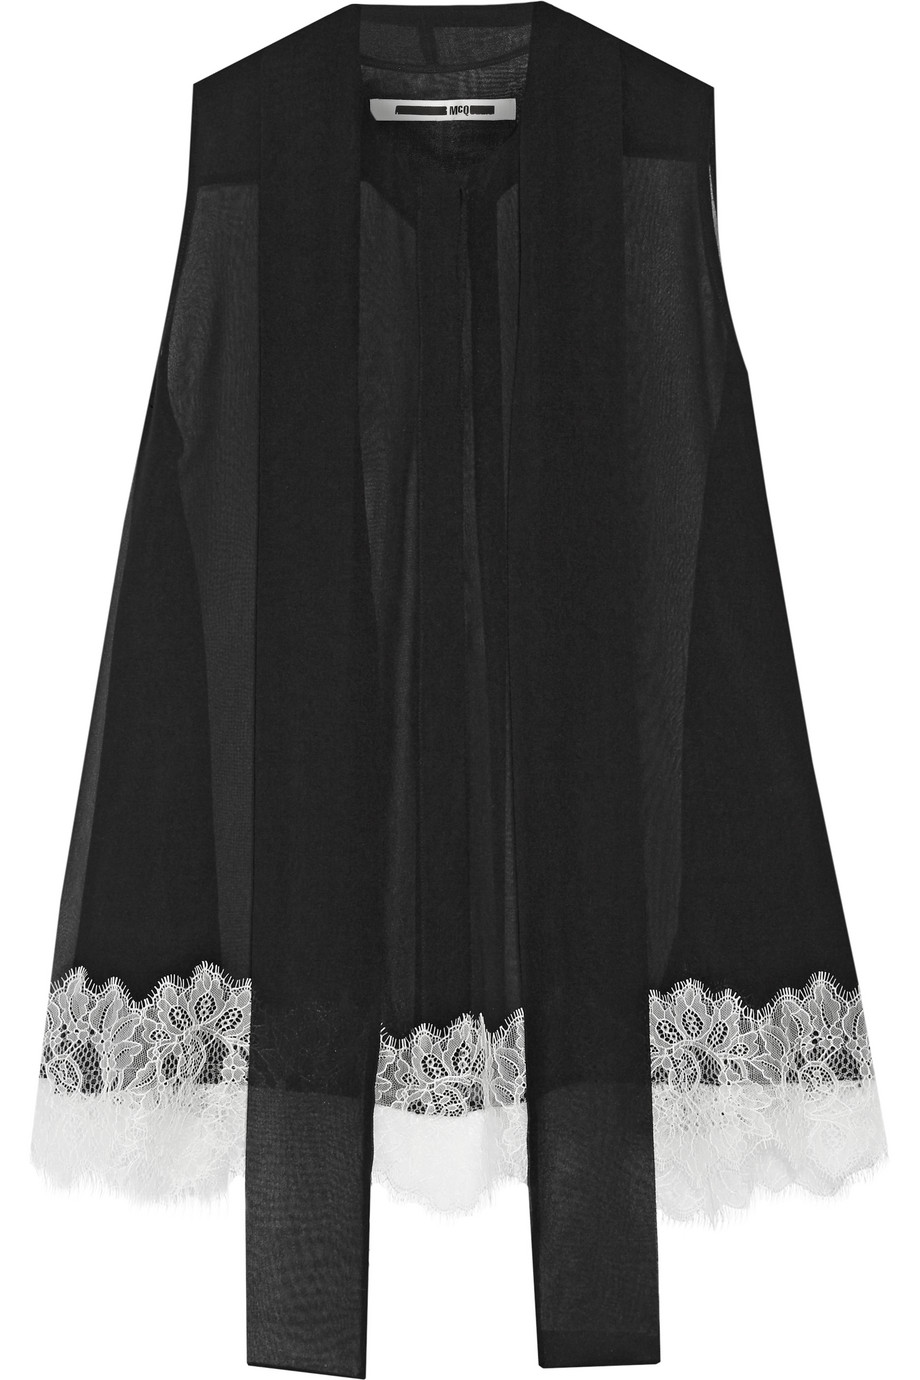 Pussy-Bow Lace-Trimmed Silk-Chiffon Blouse, Mcq Alexander Mcqueen, Black, Women's, Size: 44